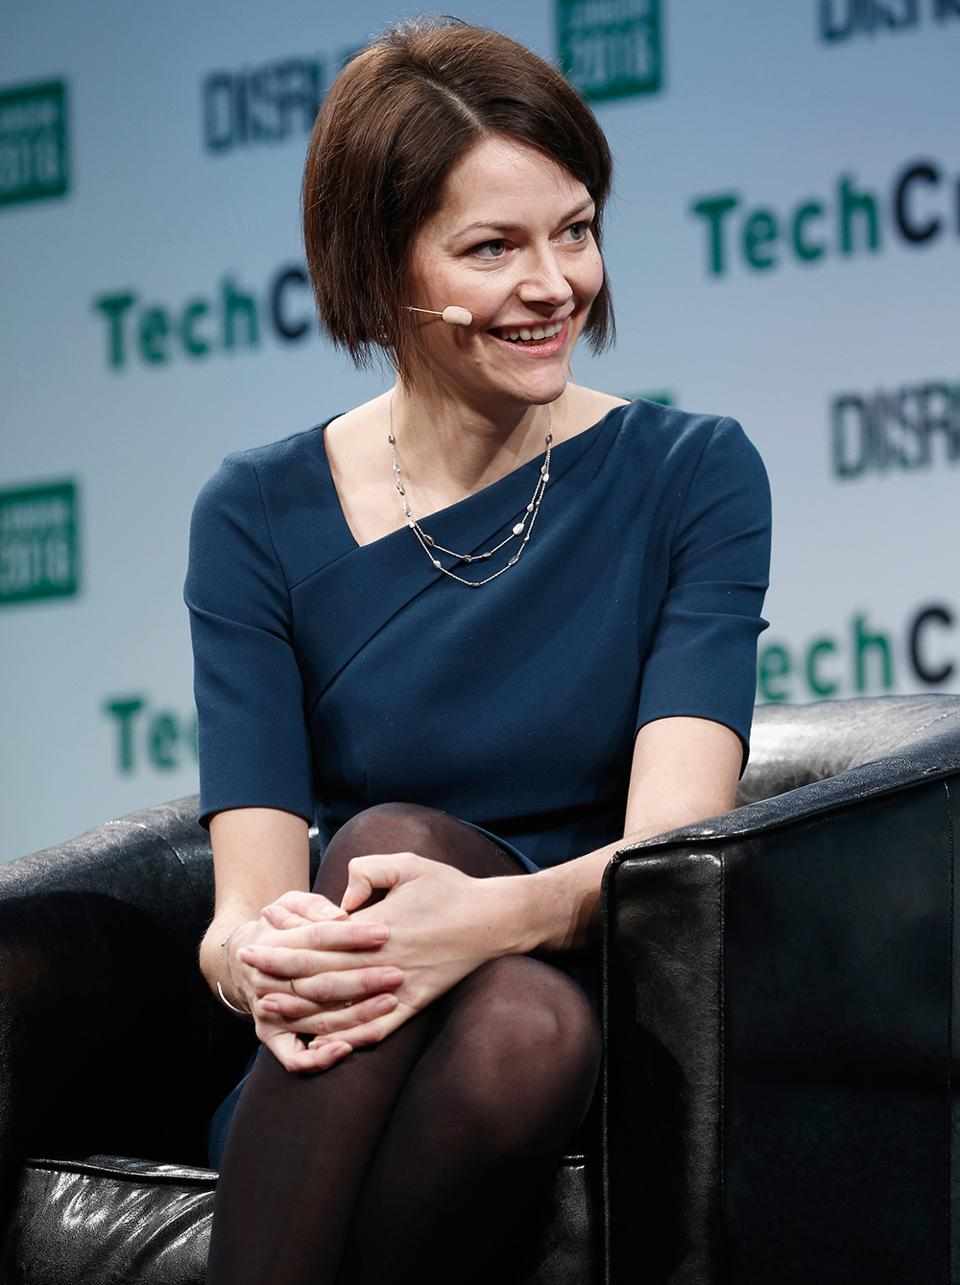 Poppy-Gustafsson-ceo-darktrace-by-John-Phillips-Getty-Images